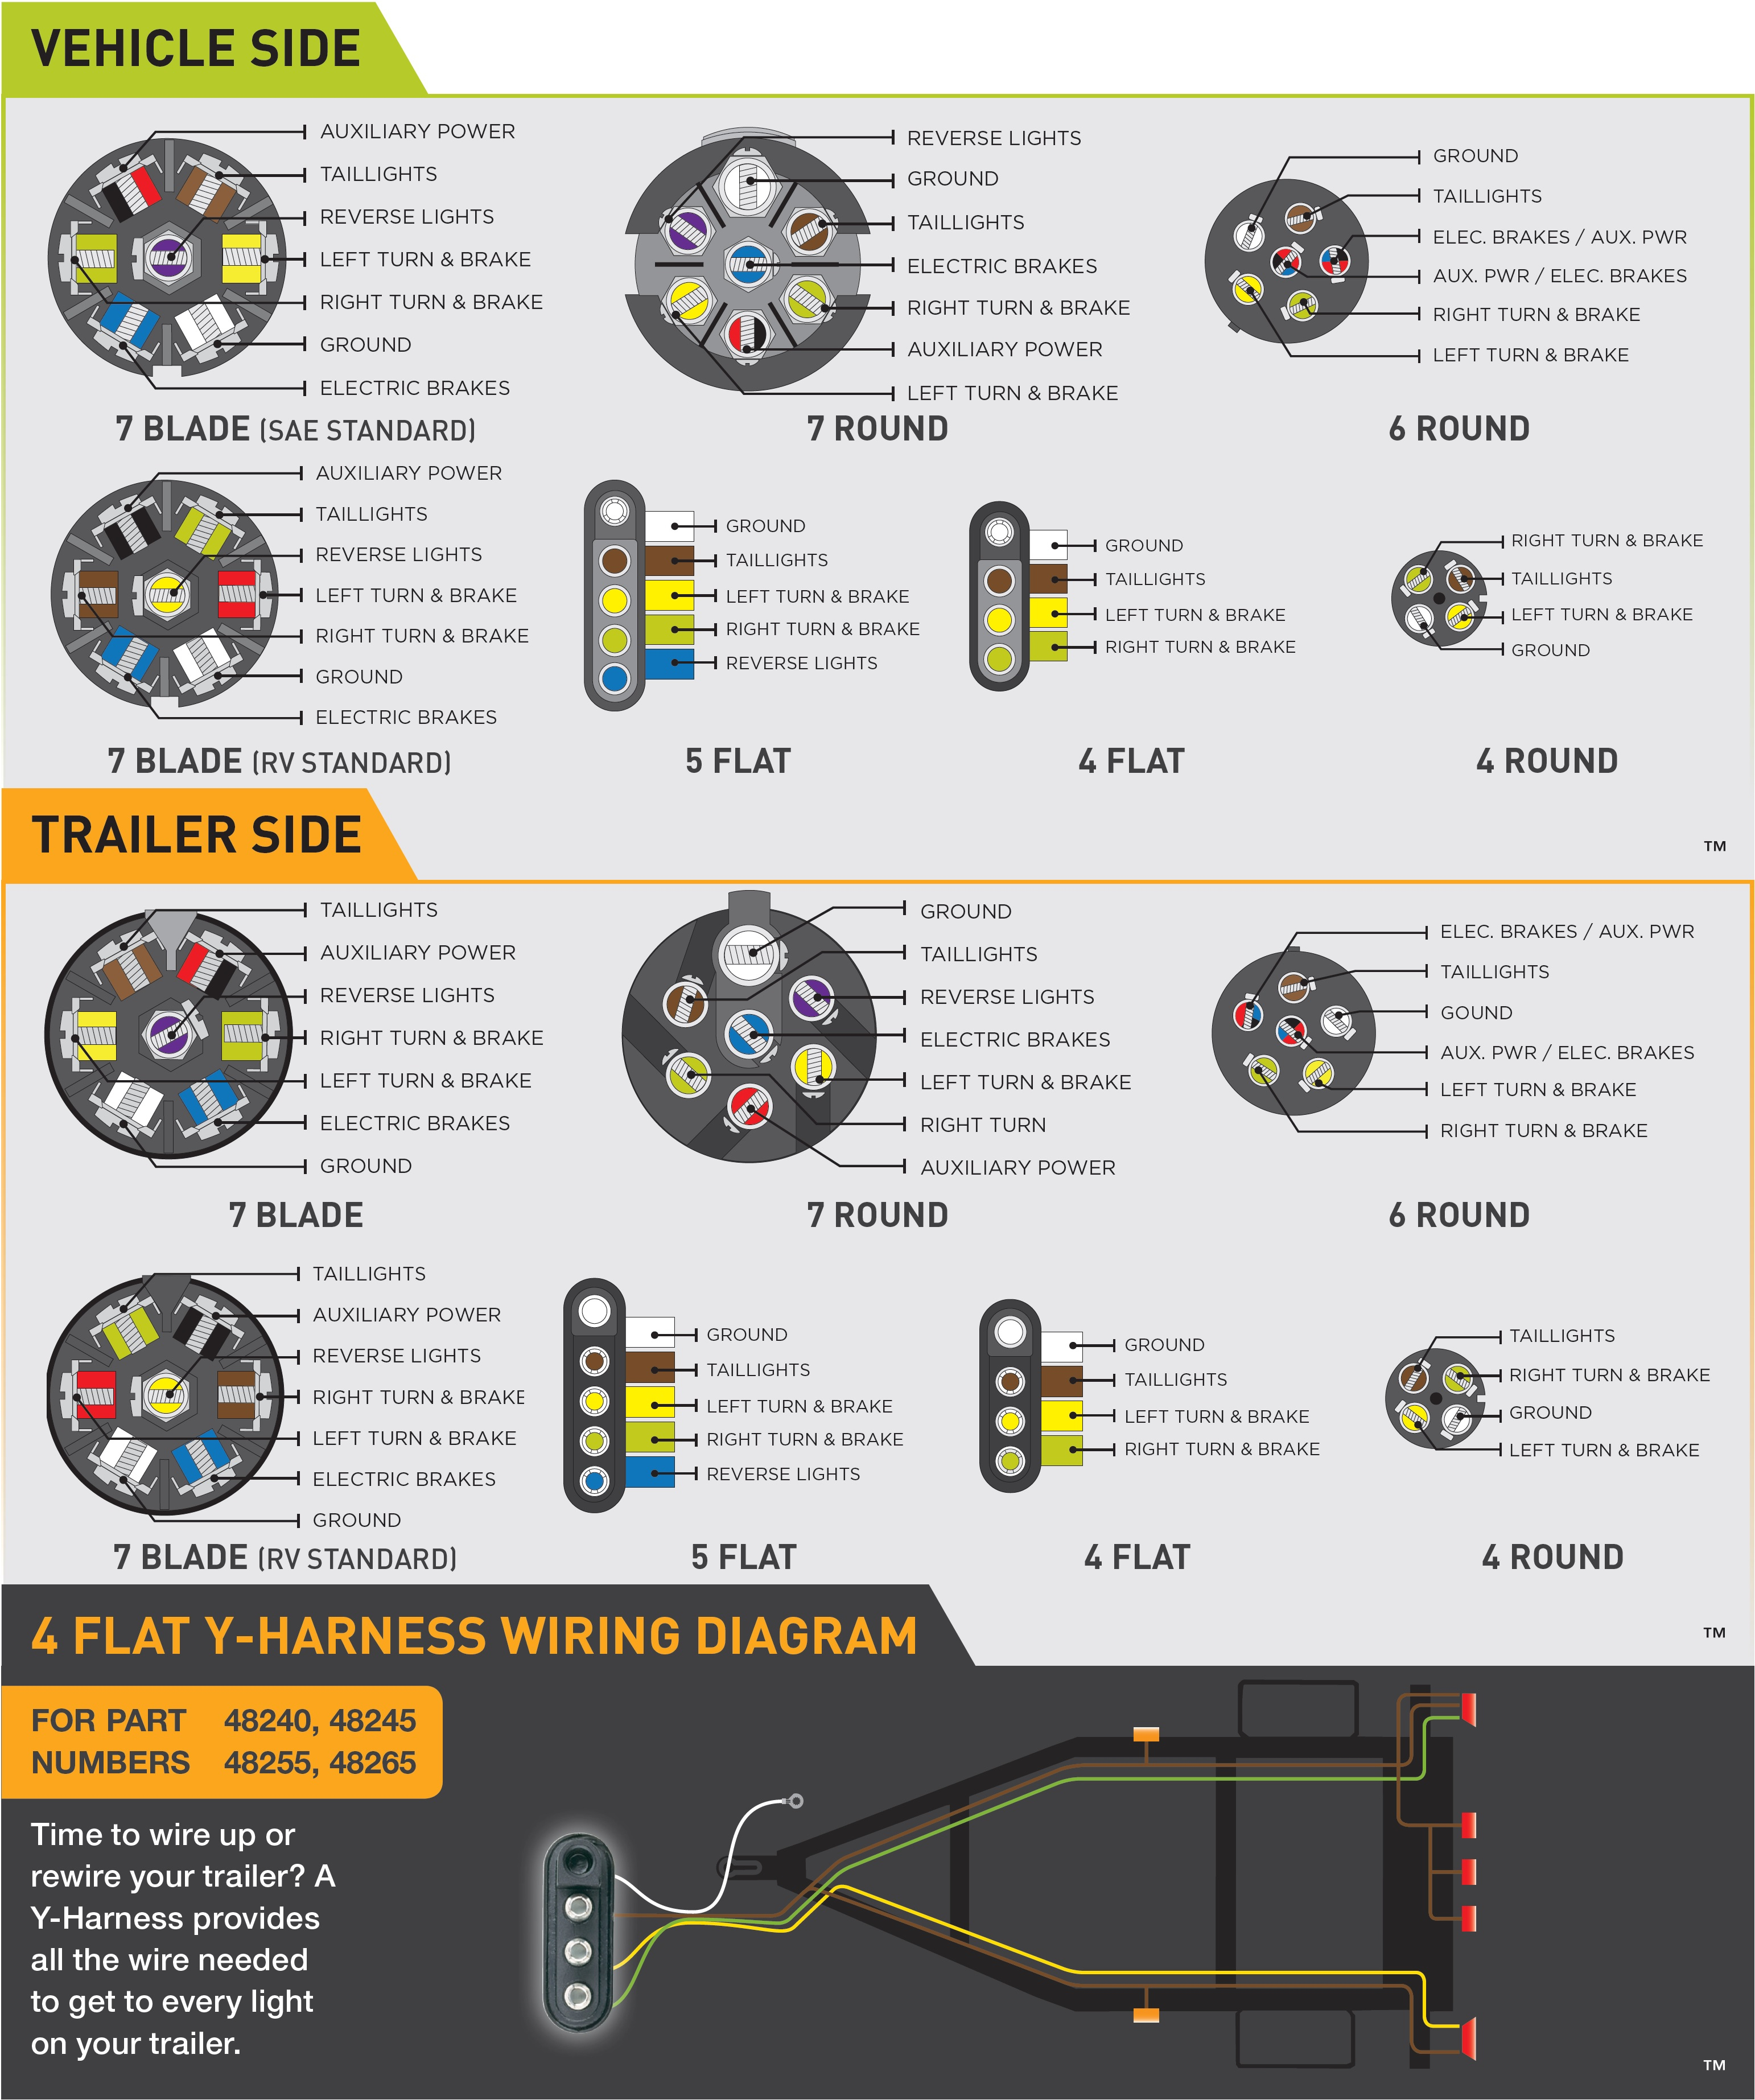 Wiring Guides - Trailer Wiring Diagram 6 Round